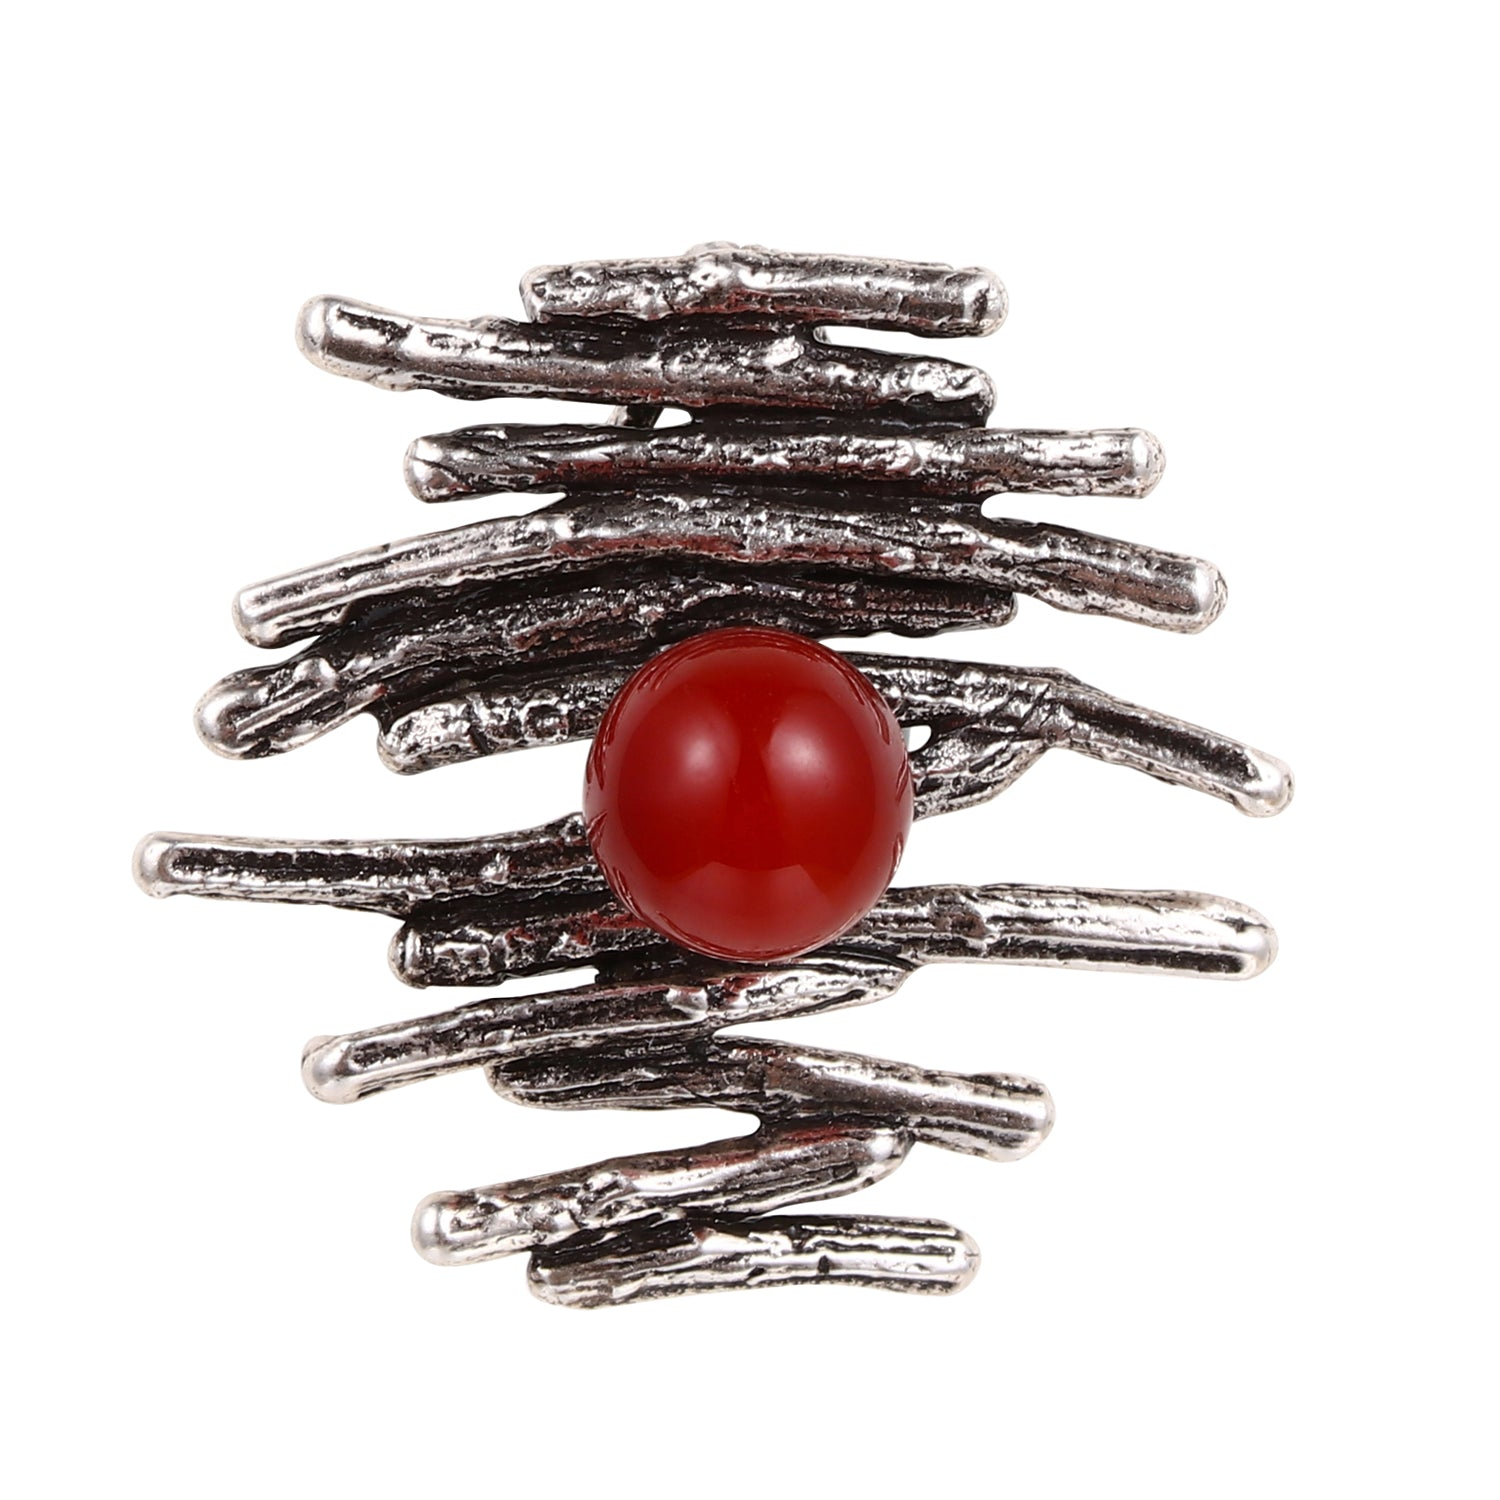 Women Jewelry Solid .925 Sterling Silver Distinctive Handcrafted Red Agate Gemstone Pendant